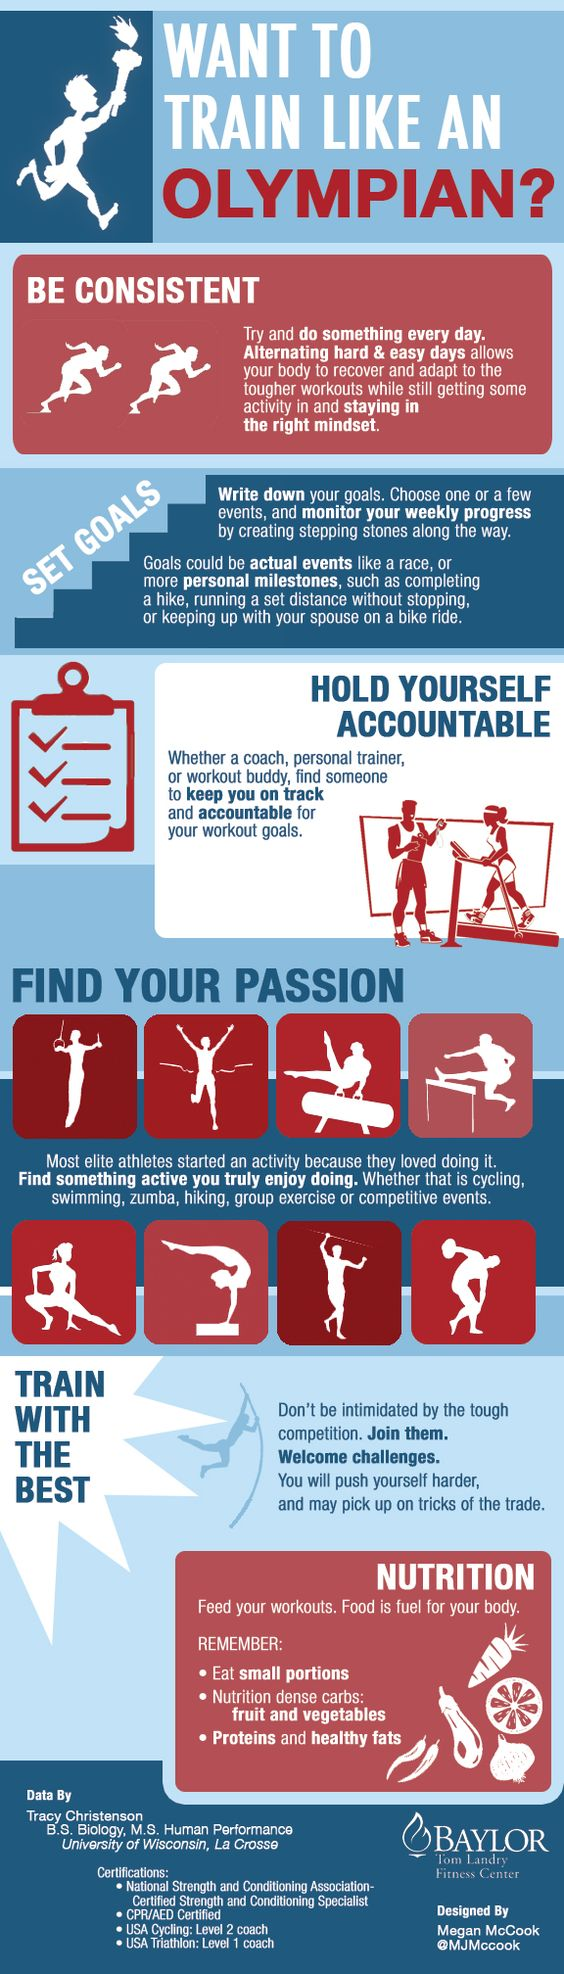 Want to train like an Olympian? Check out our #Olympics #infographic for some great tips!     #BaylorHealth